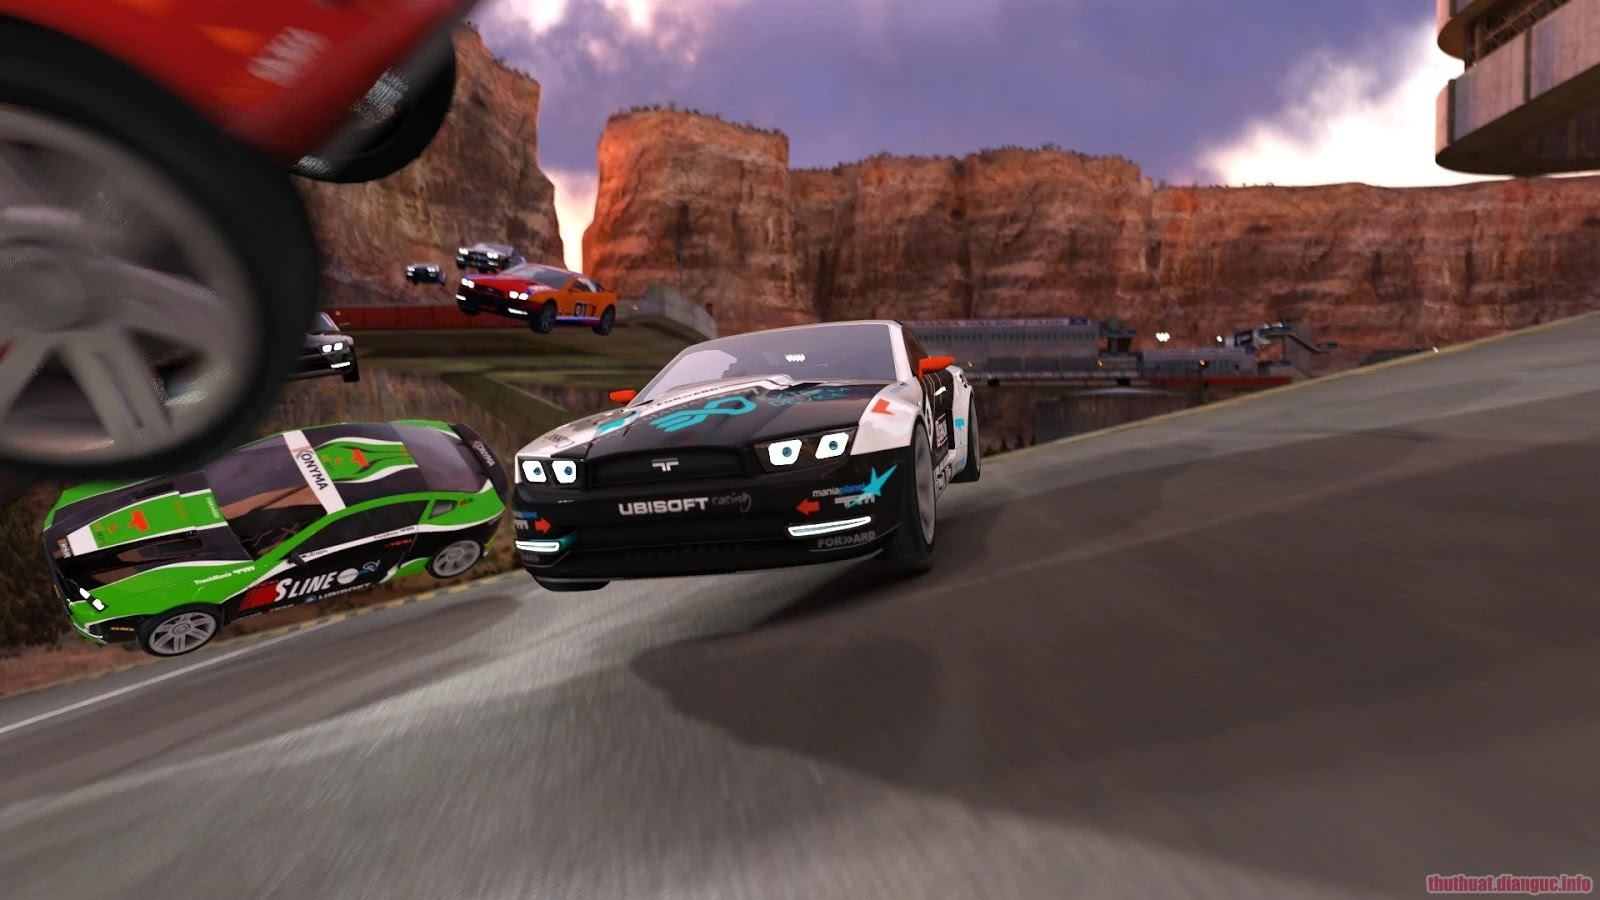 Download Game TrackMania 2 Canyon Full Crack, Game TrackMania 2 Canyon, Game TrackMania 2 Canyon free download, TrackMania 2 Canyon, TrackMania 2 Canyon free download